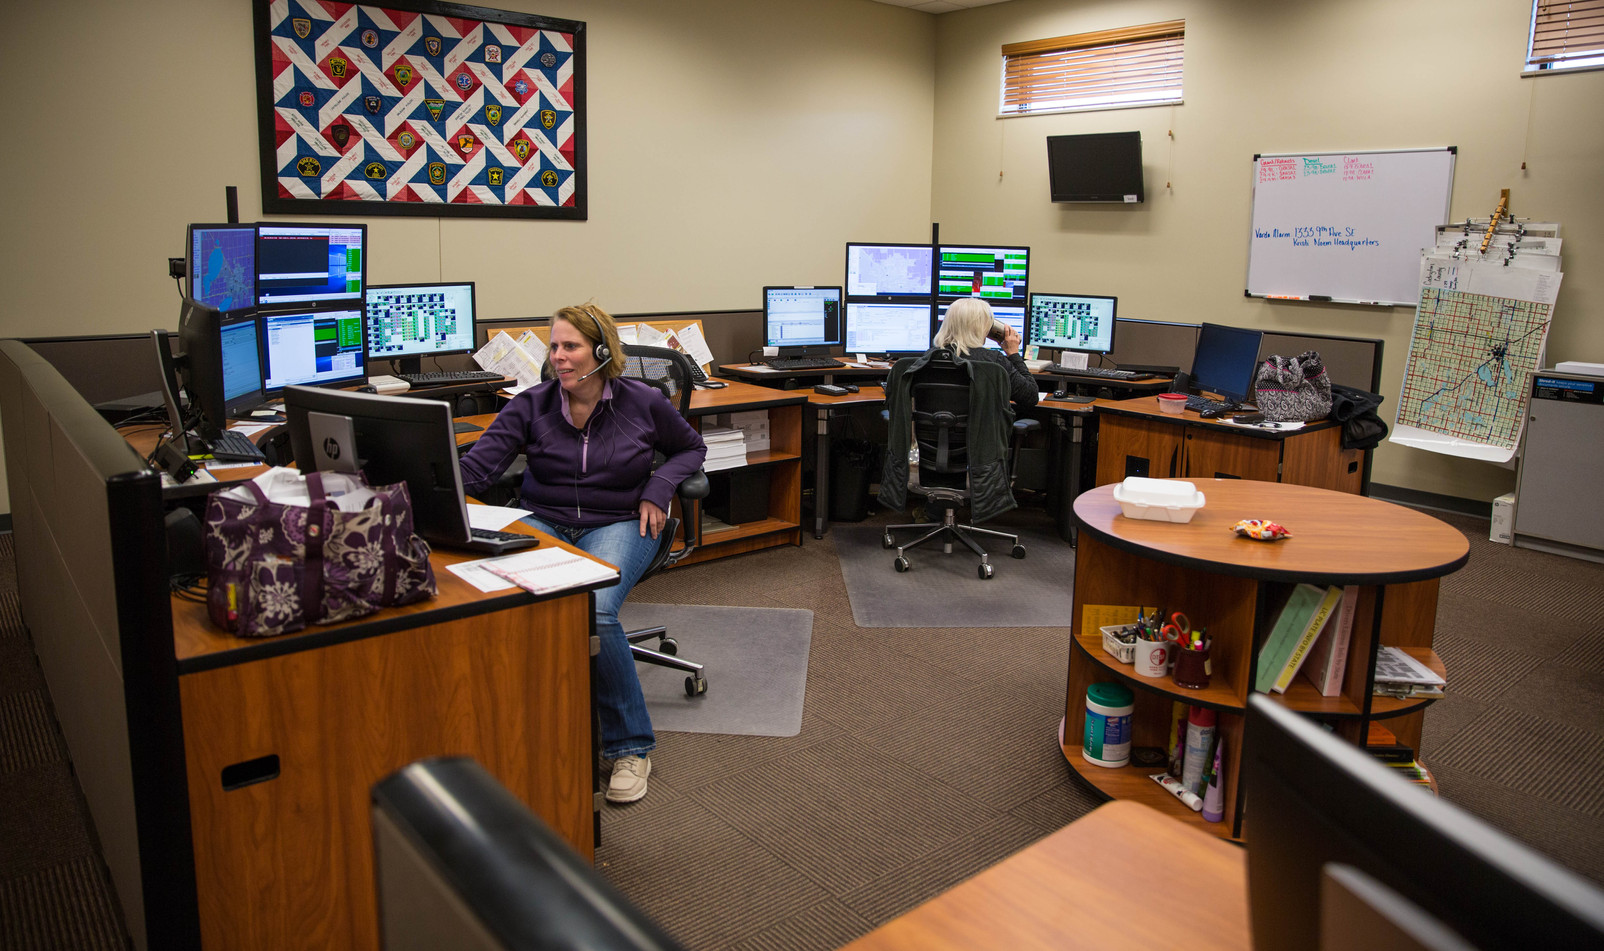 Dispatchers Lori Sein, left, and Theresa Riter answer calls in the Watertown Police Department call center on May 11, 2018. The call center, which covers an average of calls from Codington, Hamlin, Clark, Deuel, Grant and Roberts counties, has two to four dispatchers working 8-hour shifts at a time. ©2018 Grace Ramey